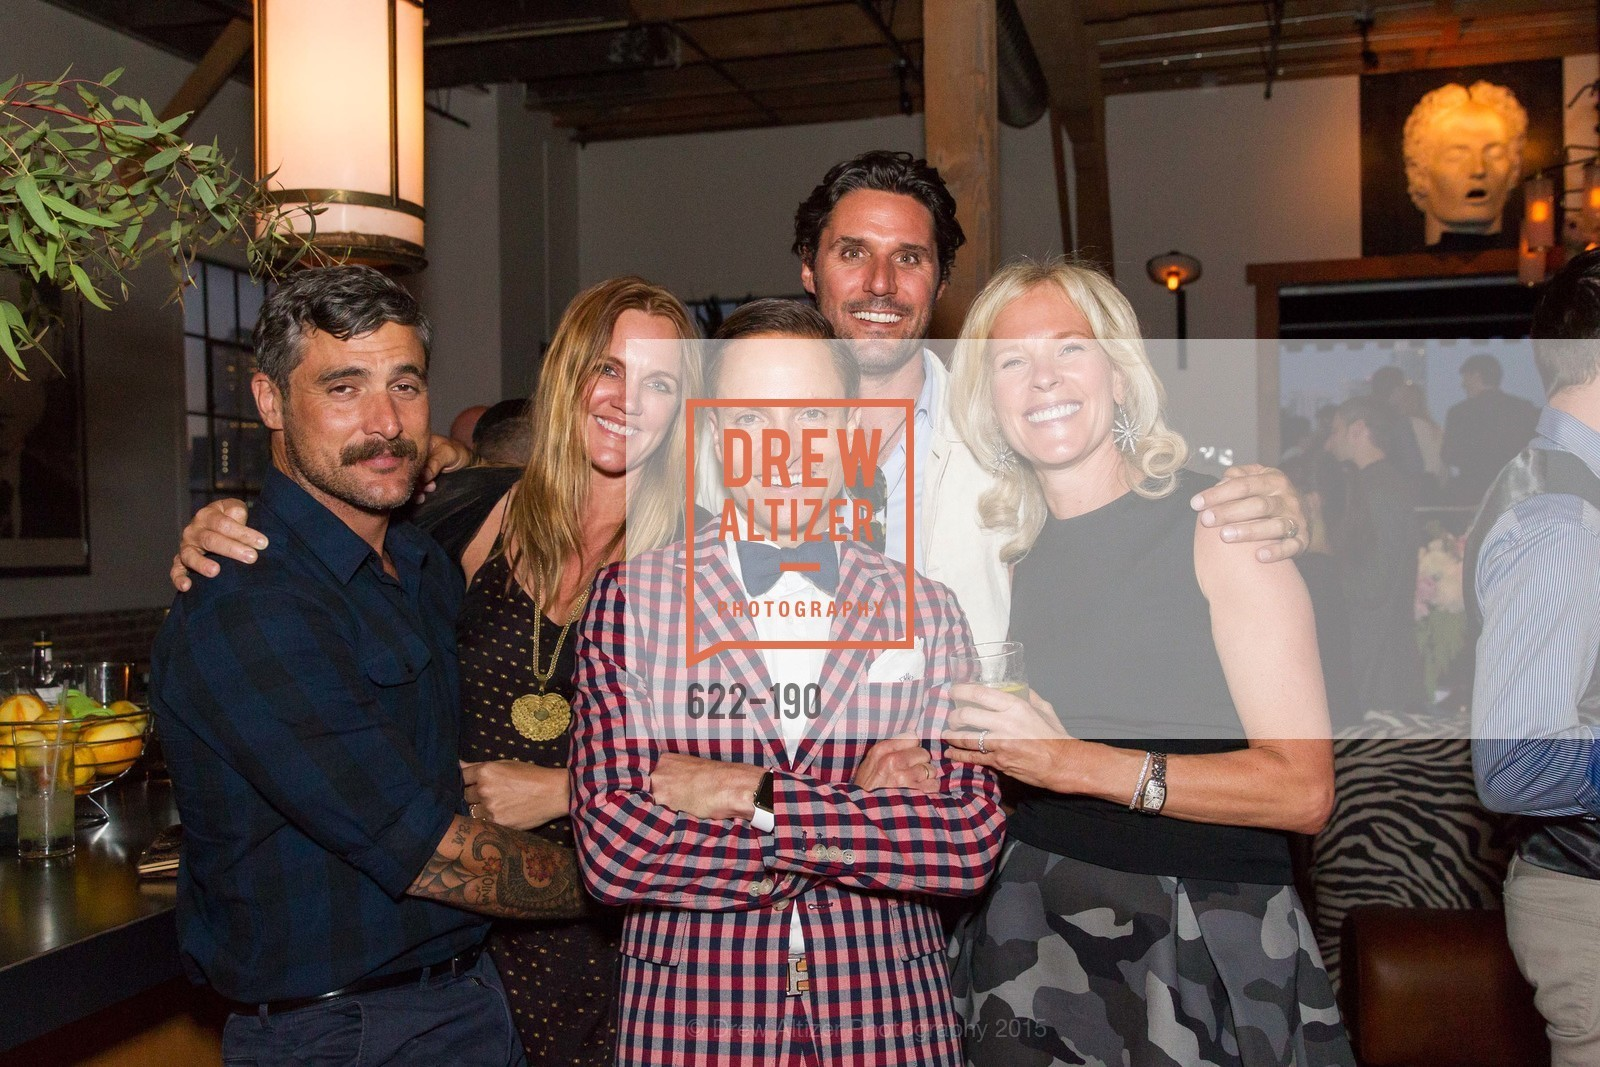 Douglas Friedman, Jen Wick, Ken Fulk, Will Wick, Kerri Lehmann, KEN FULK'S New Furniture Line Unveiling at THE MAGIC FACTORY, The Magic Factory. 310 7th St, June 25th, 2015,Drew Altizer, Drew Altizer Photography, full-service agency, private events, San Francisco photographer, photographer california